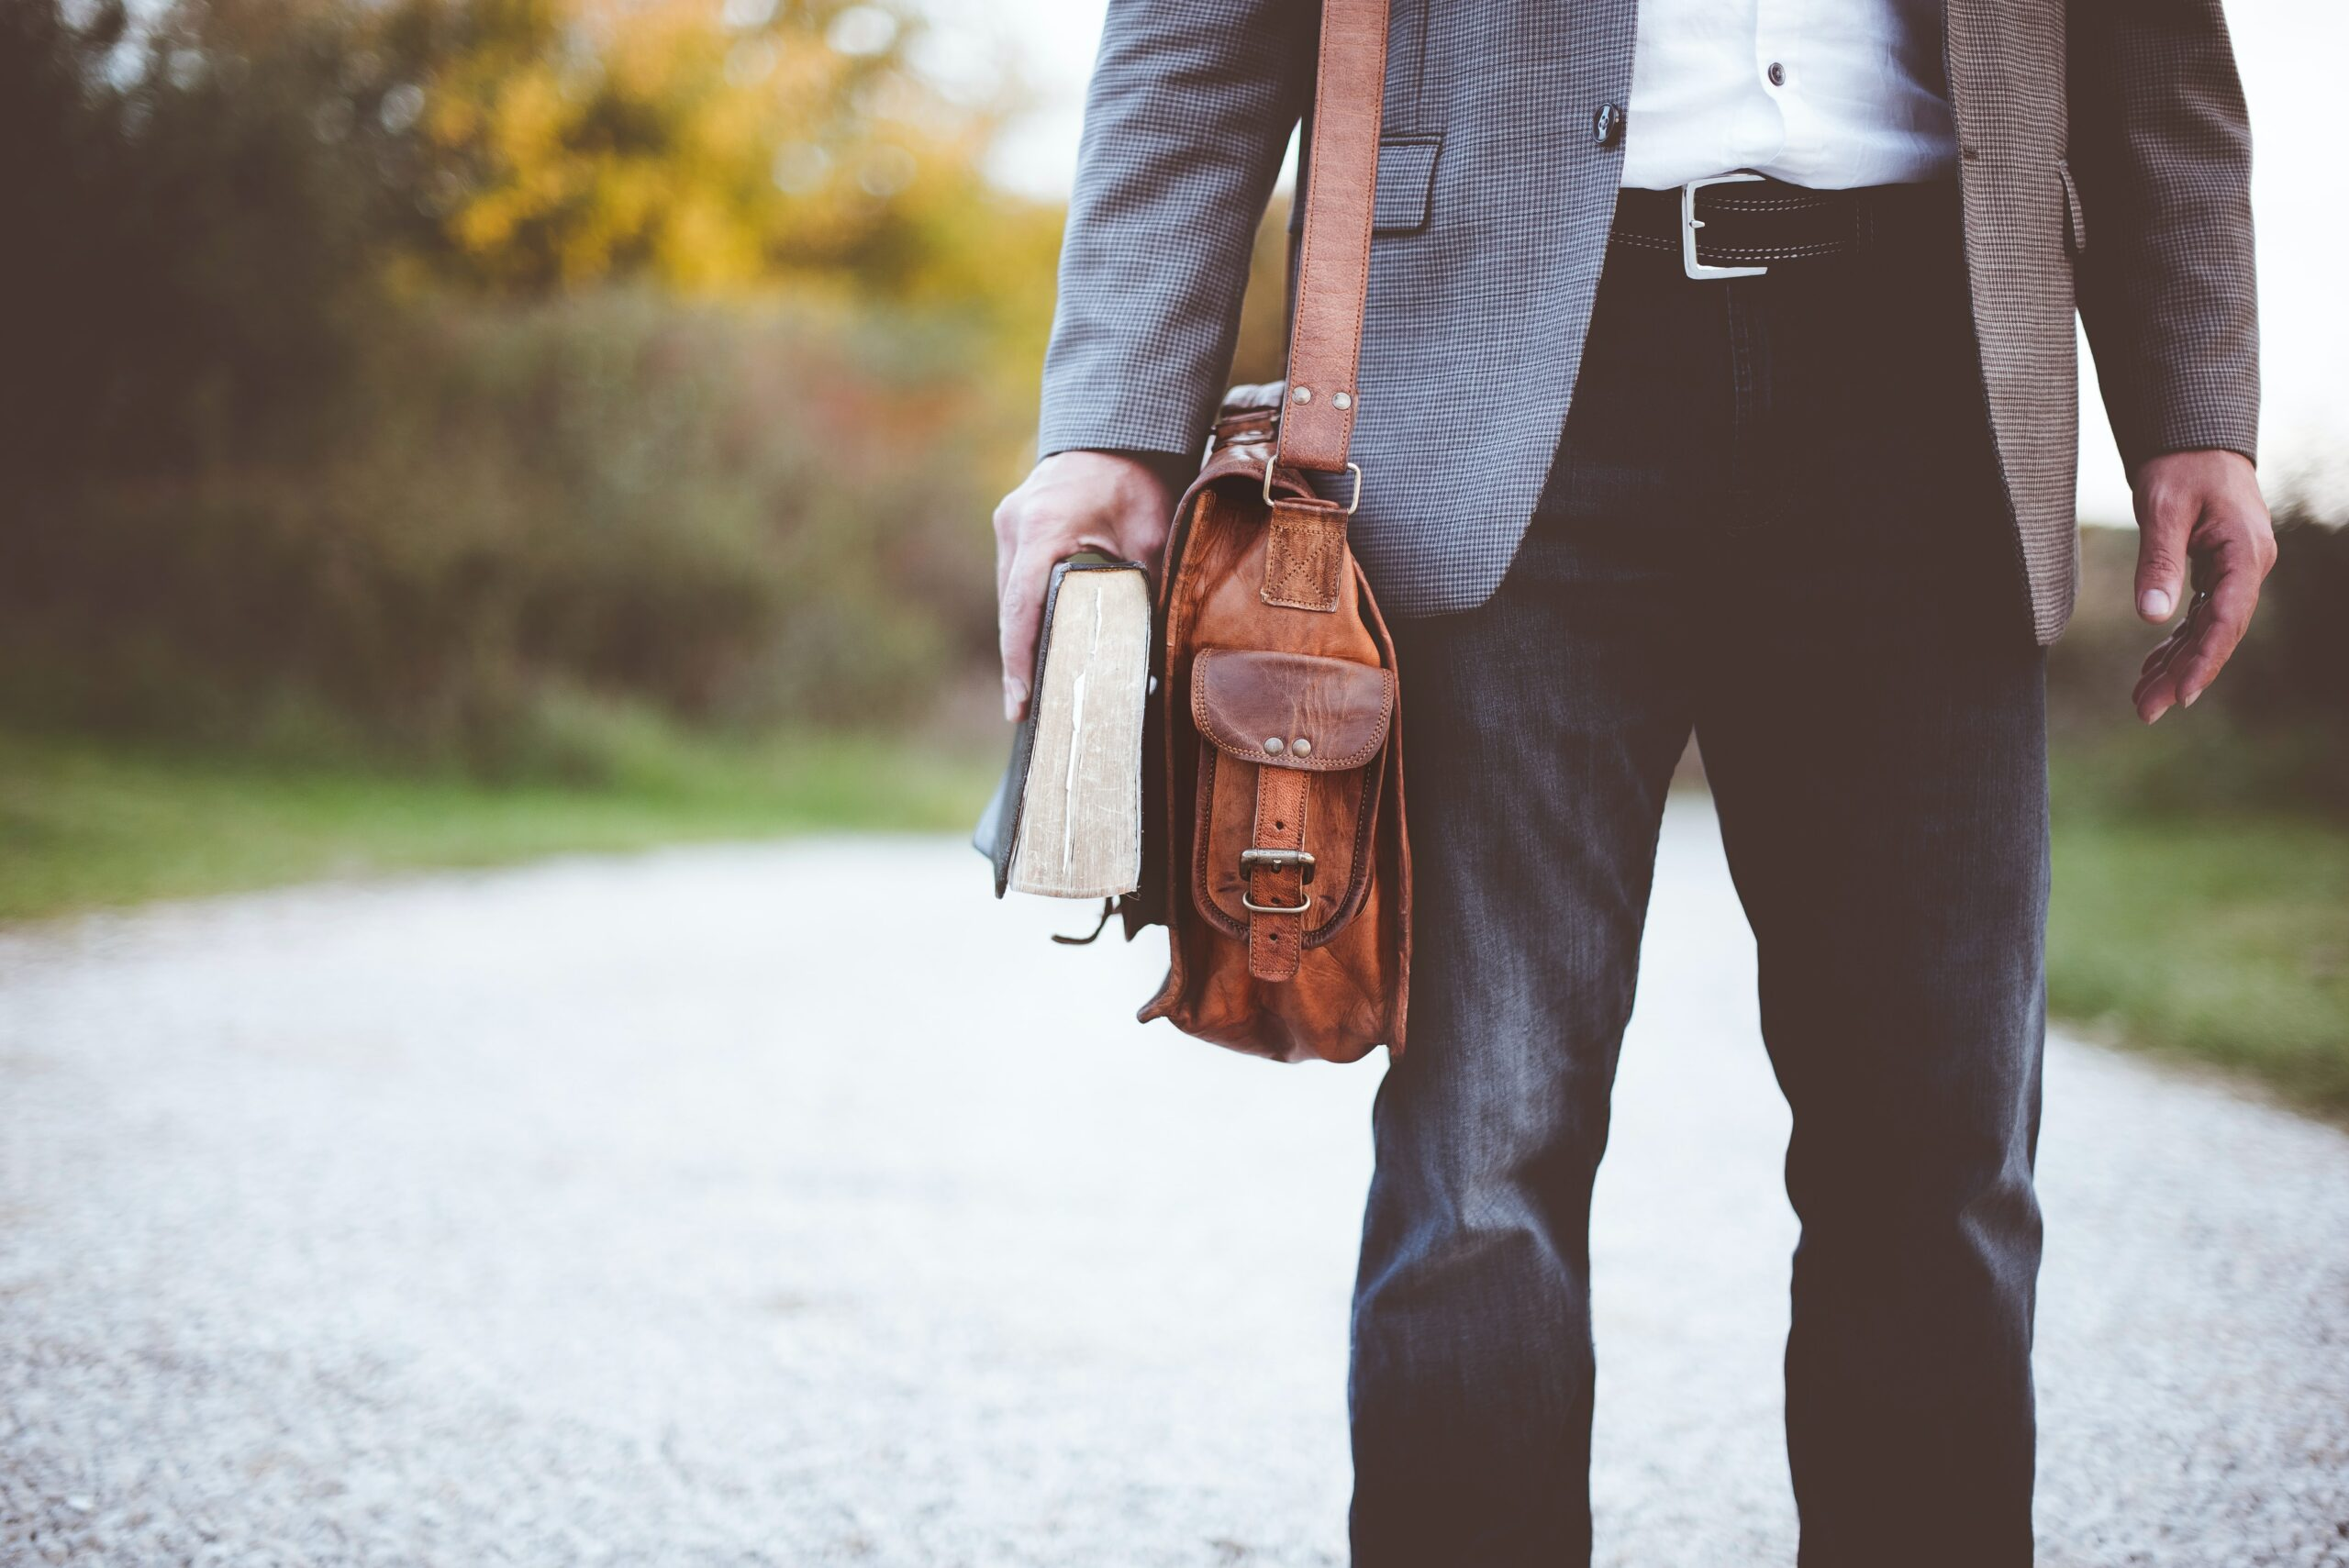 holding a book and wearing a leather bag while looking for an alternative job for teachers